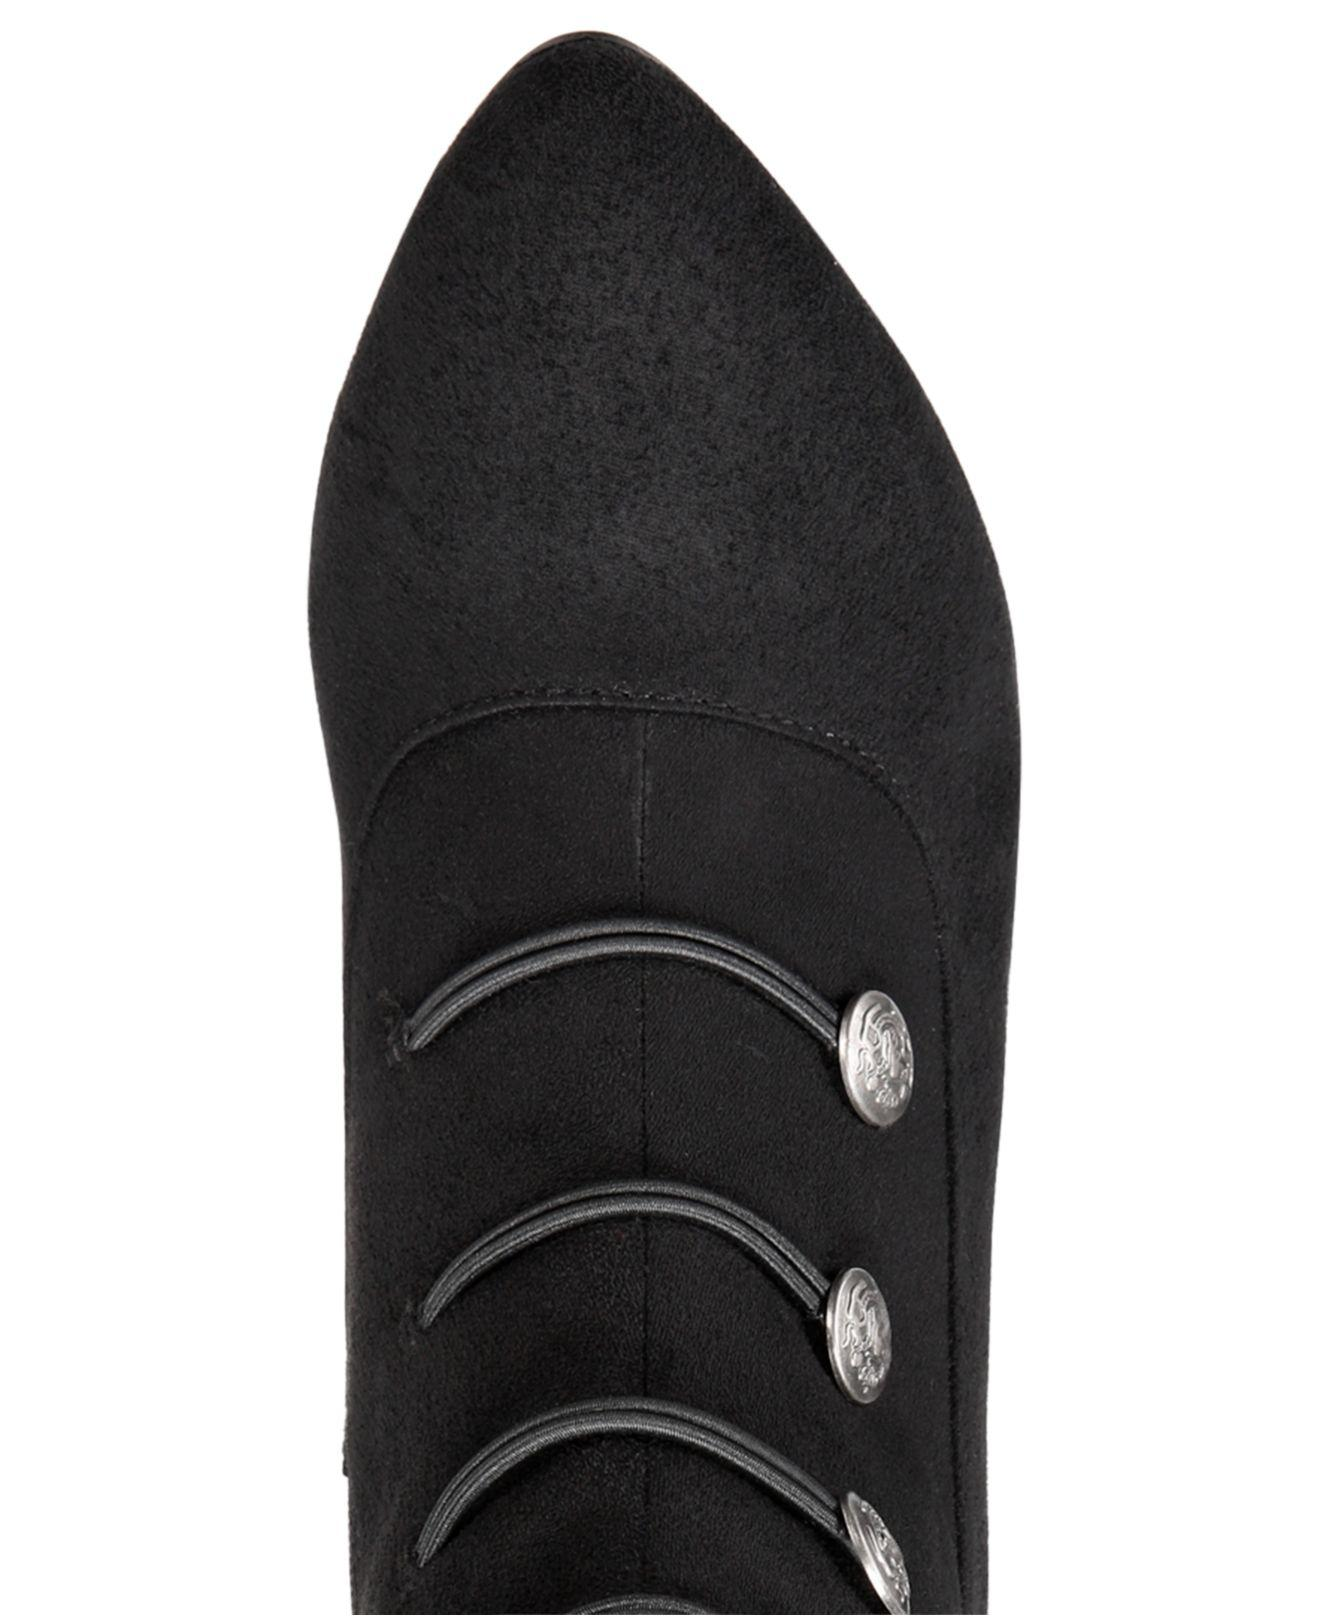 Rialto Chung Zip Boots in Black - Lyst